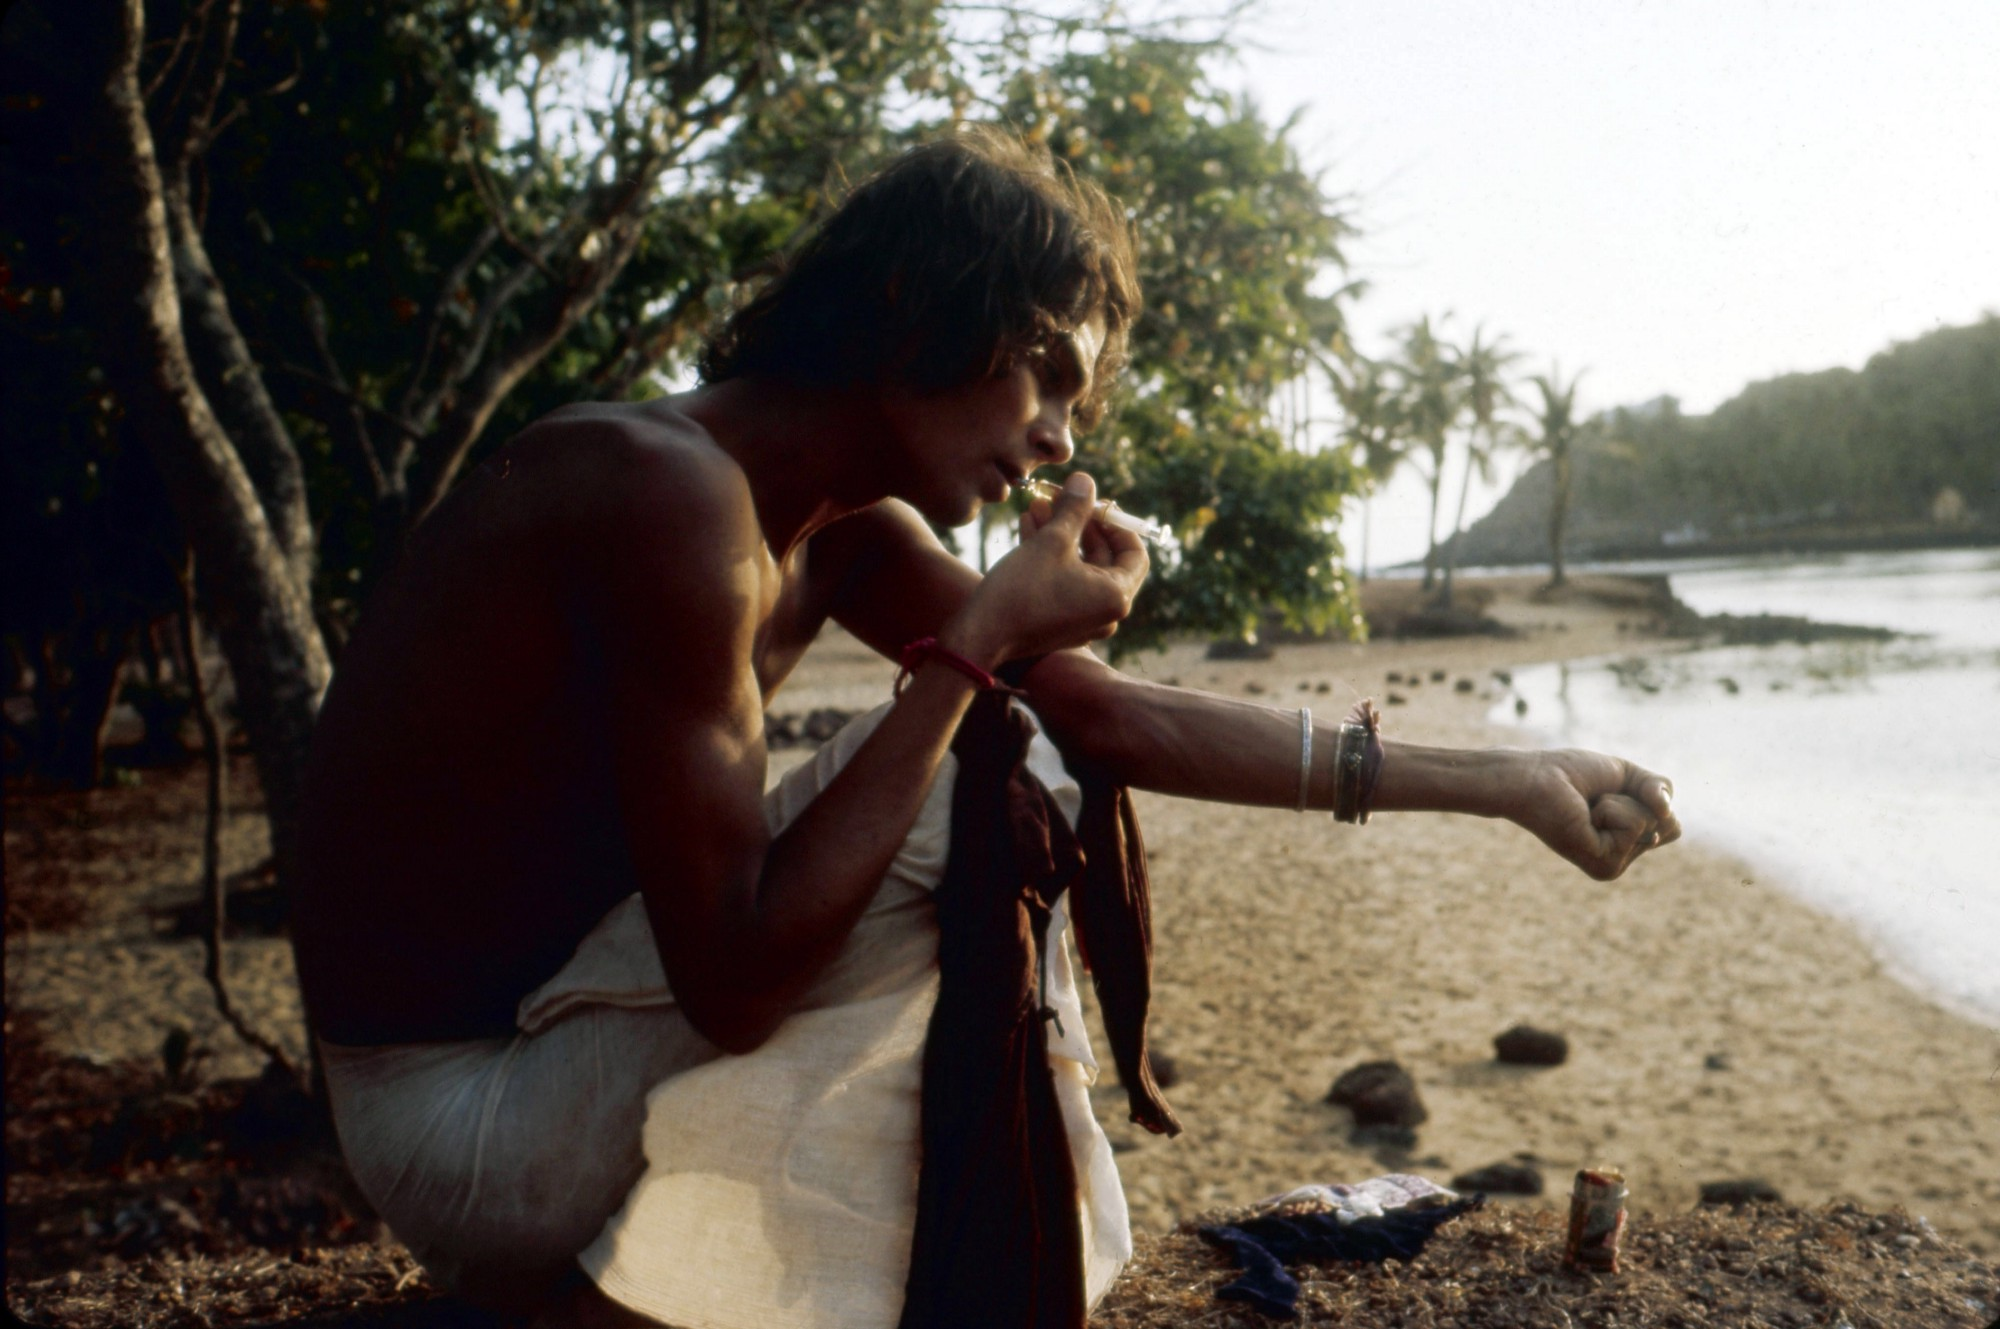 These Absurd Photos Of Young Travelers On The Hippie Trail Raise A Lot Of Questions-3401